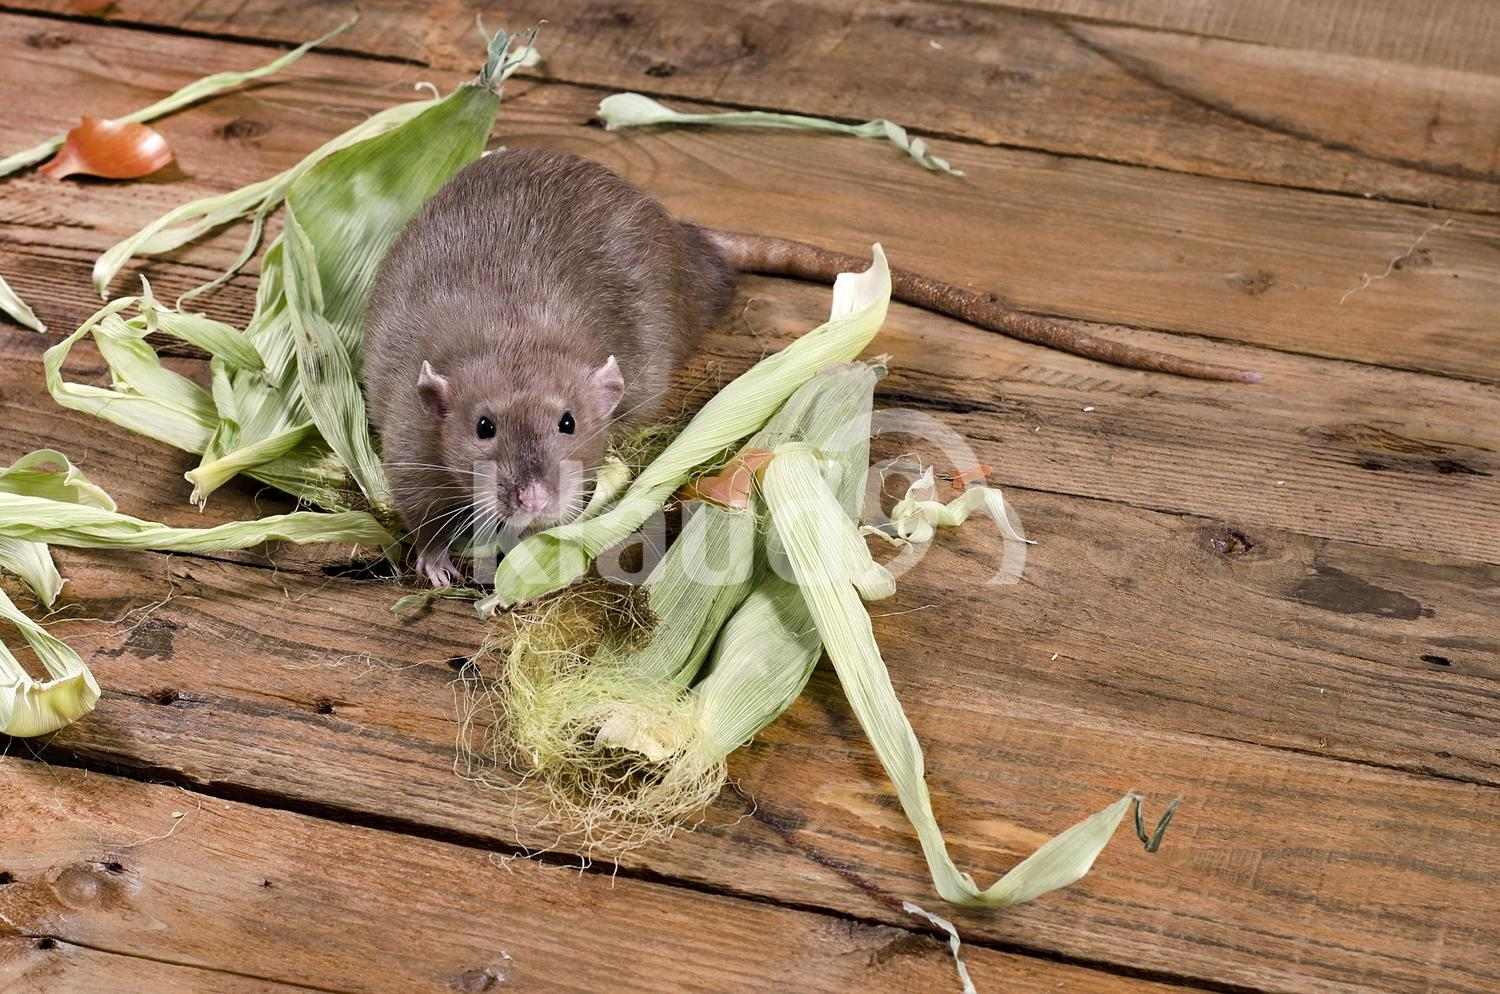 Rat and leaves of corn.